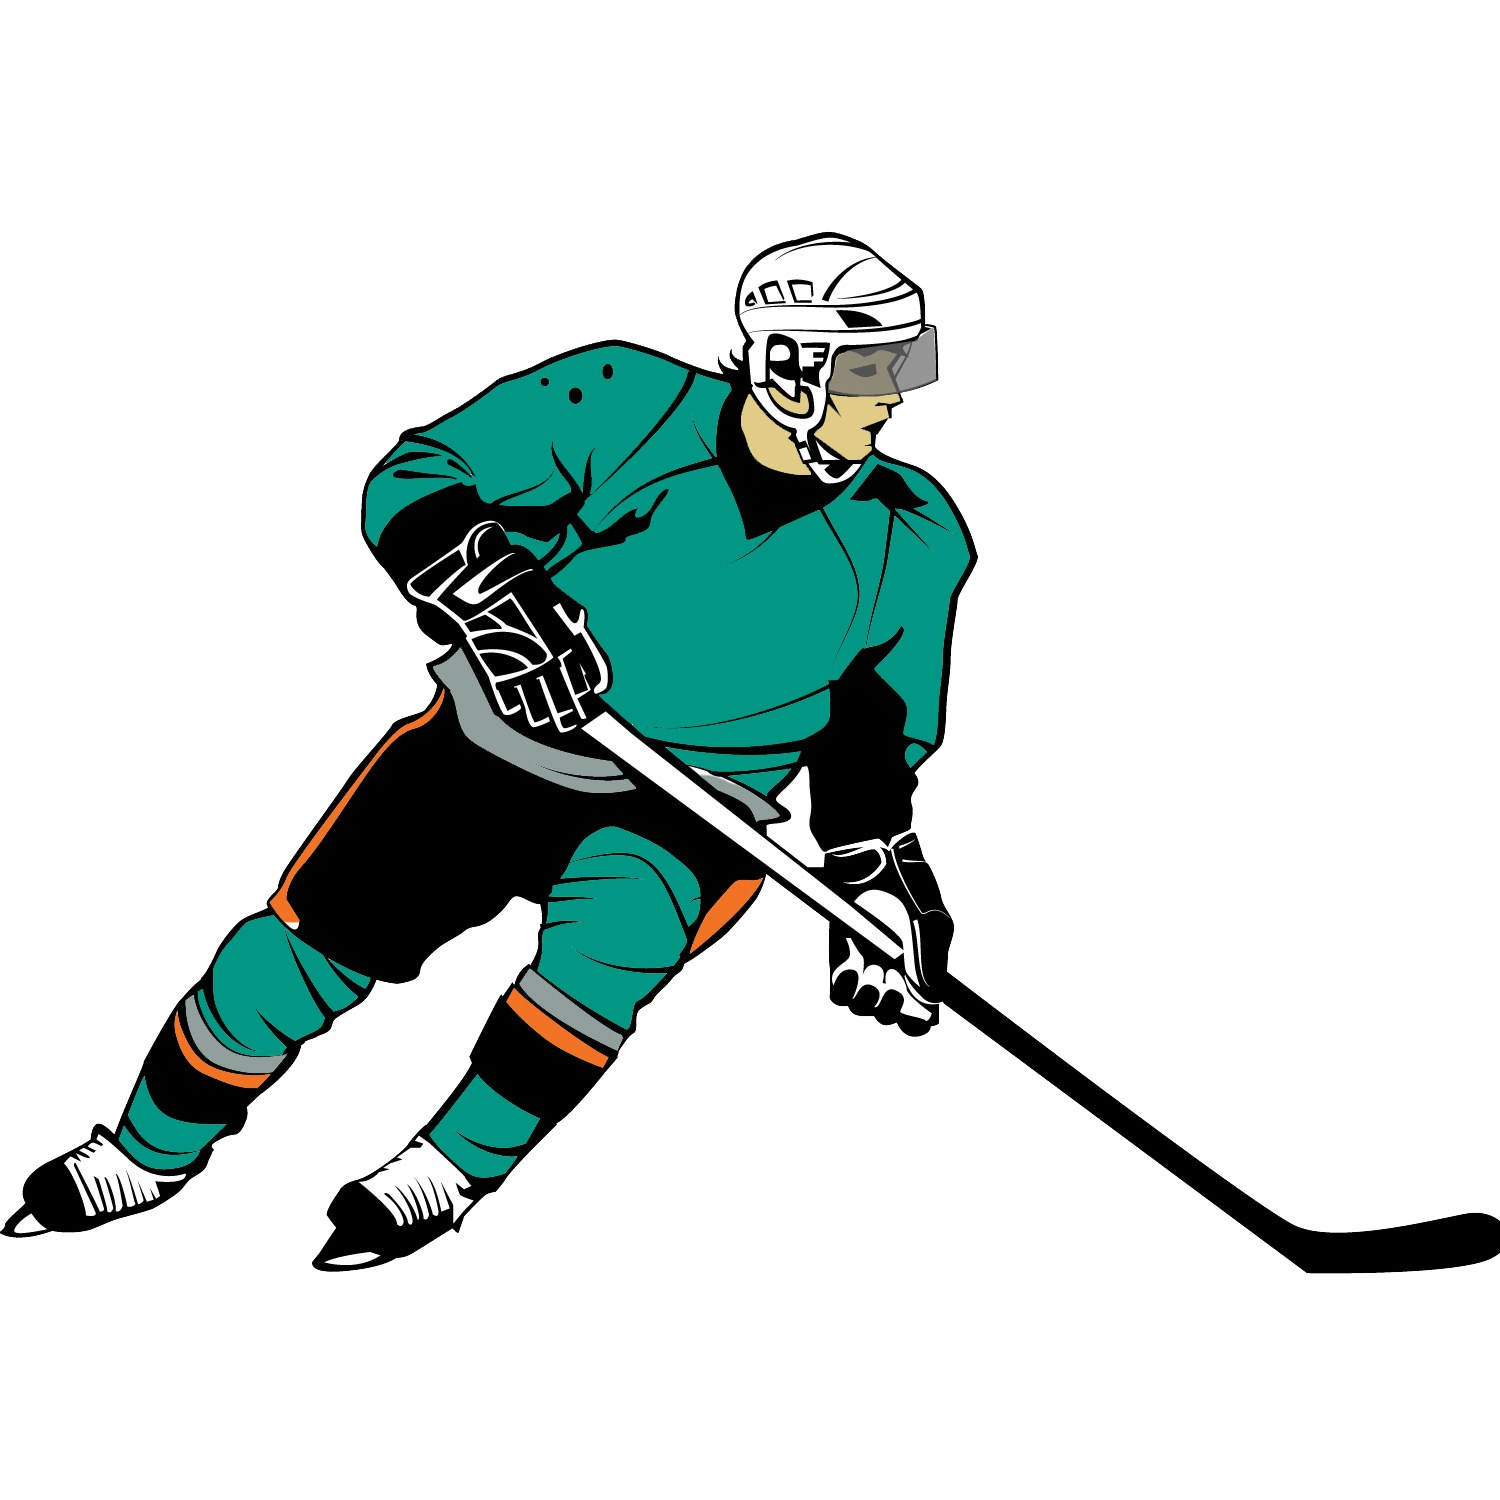 Free ice hockey clipart 5 » Clipart Portal.